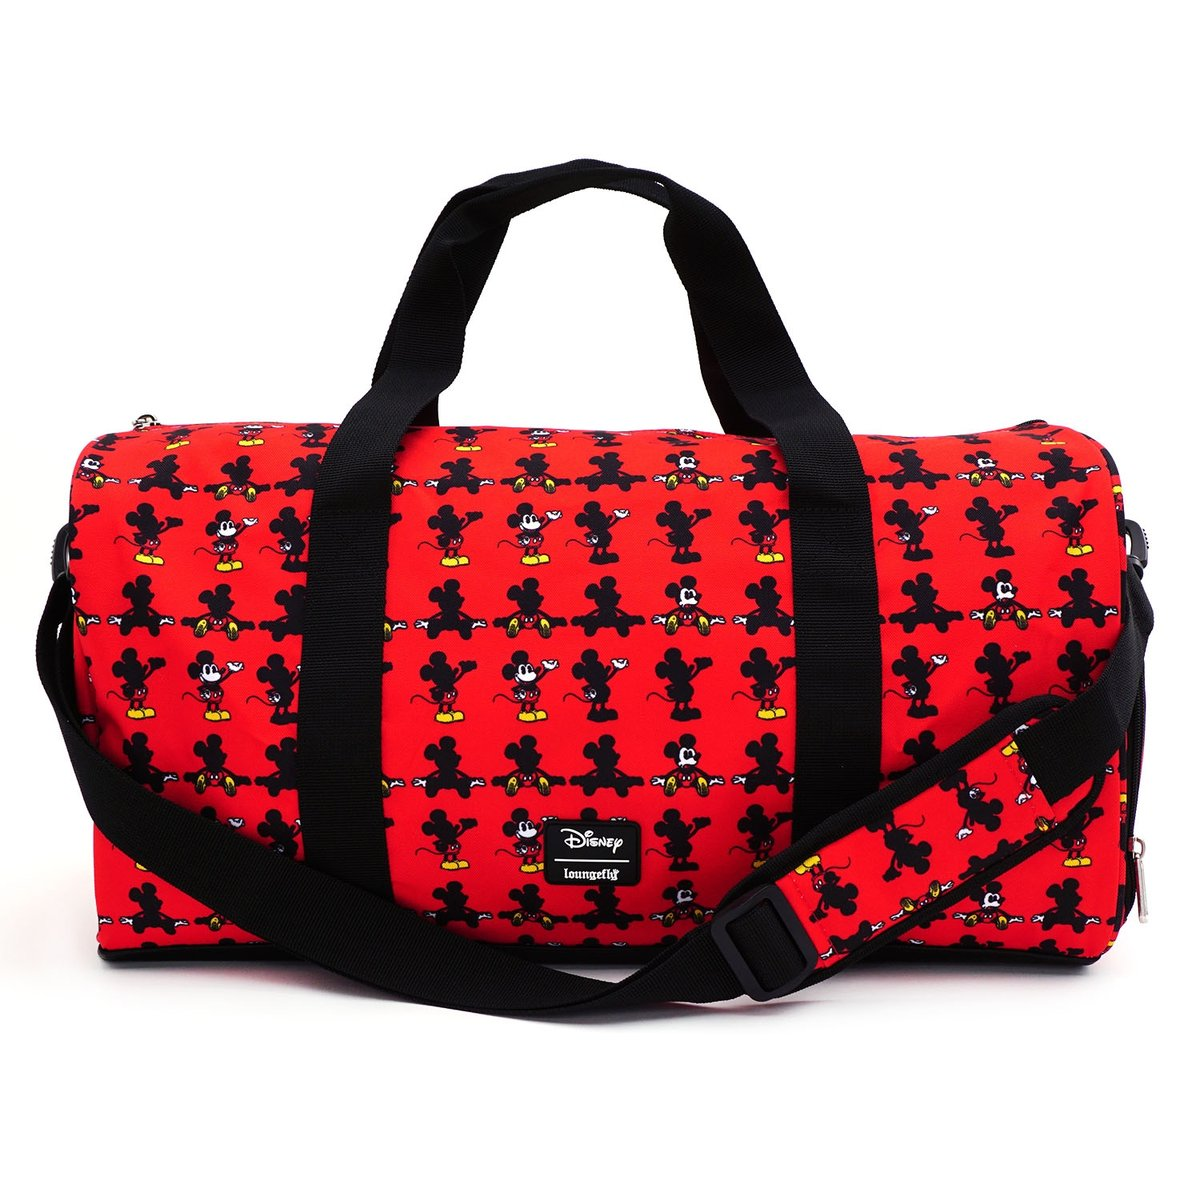 Loungefly Disney Mickey Mouse AOP Nylon Duffle Holdall Bag - WDTB1829